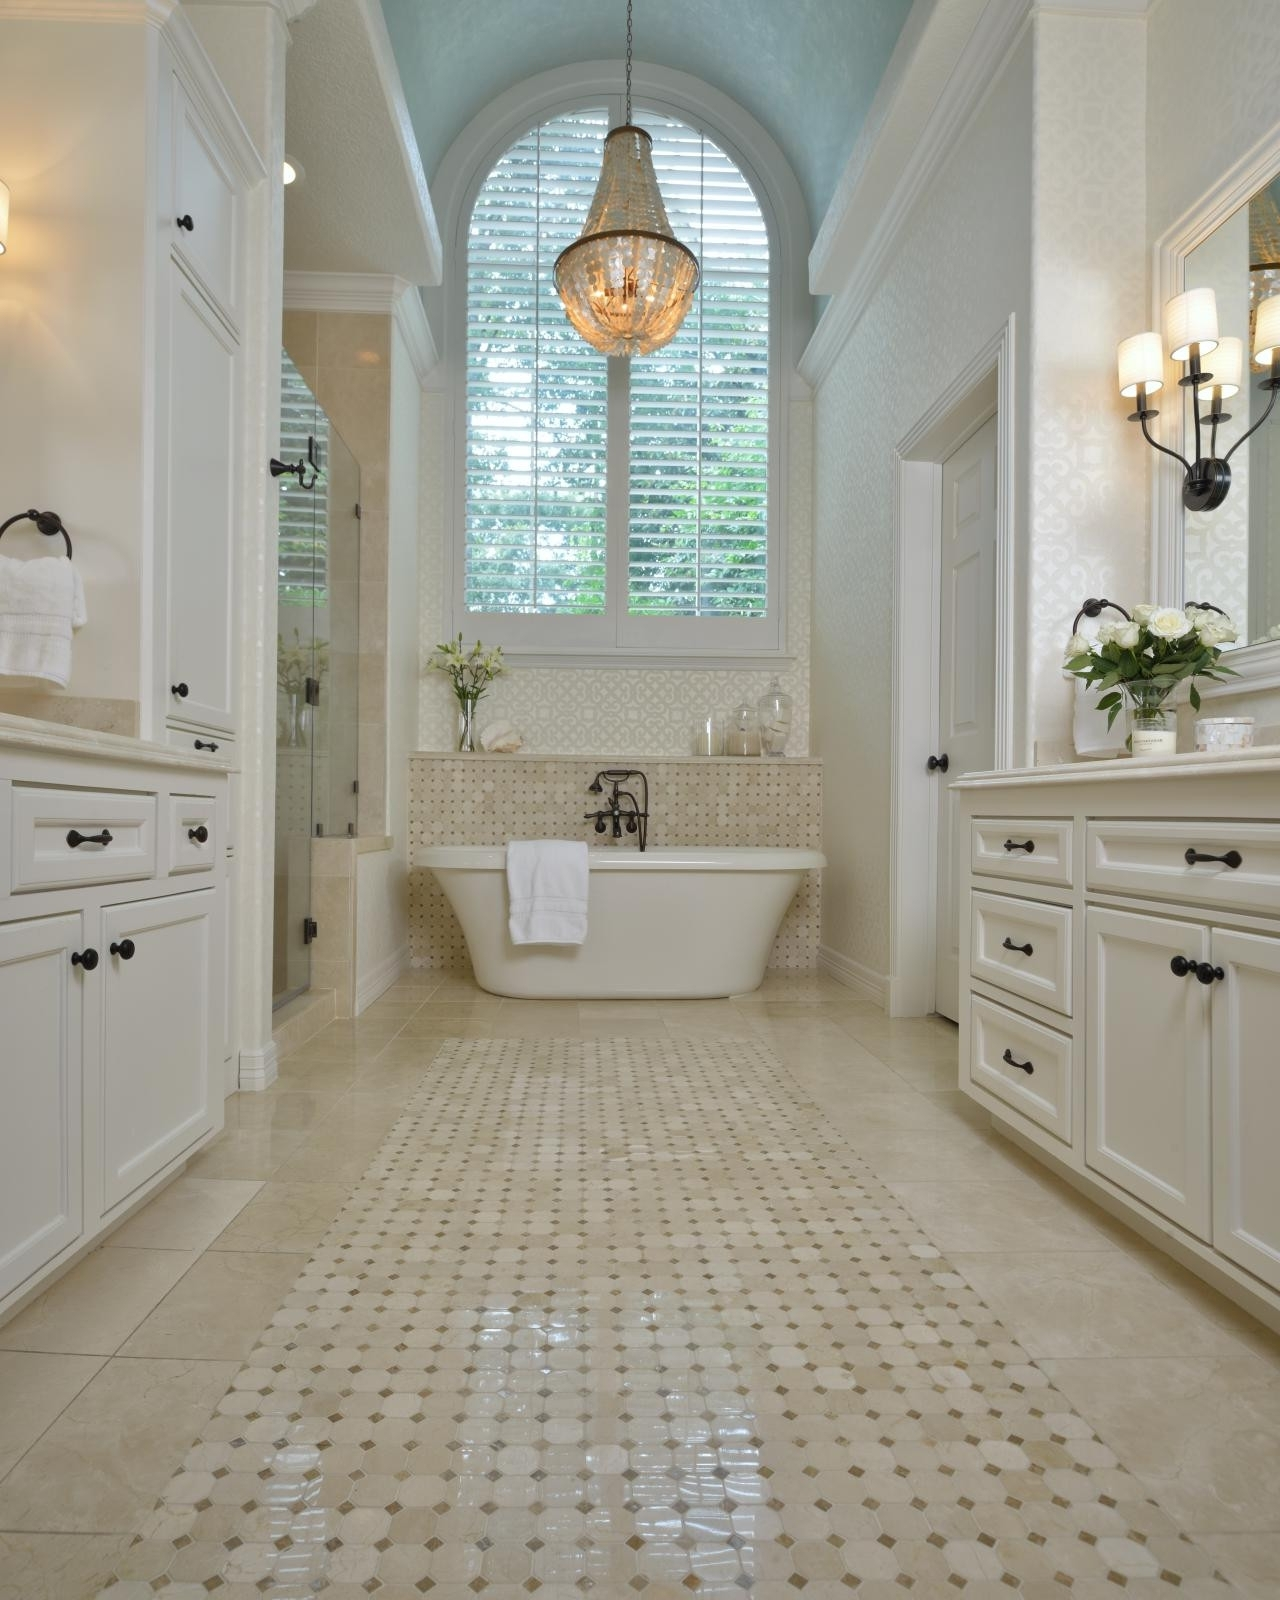 Modern Bathroom Chandeliers Within Trendy Chandeliers : Beautiful Latest Modern Bathroom Chandeliers Images (View 6 of 15)